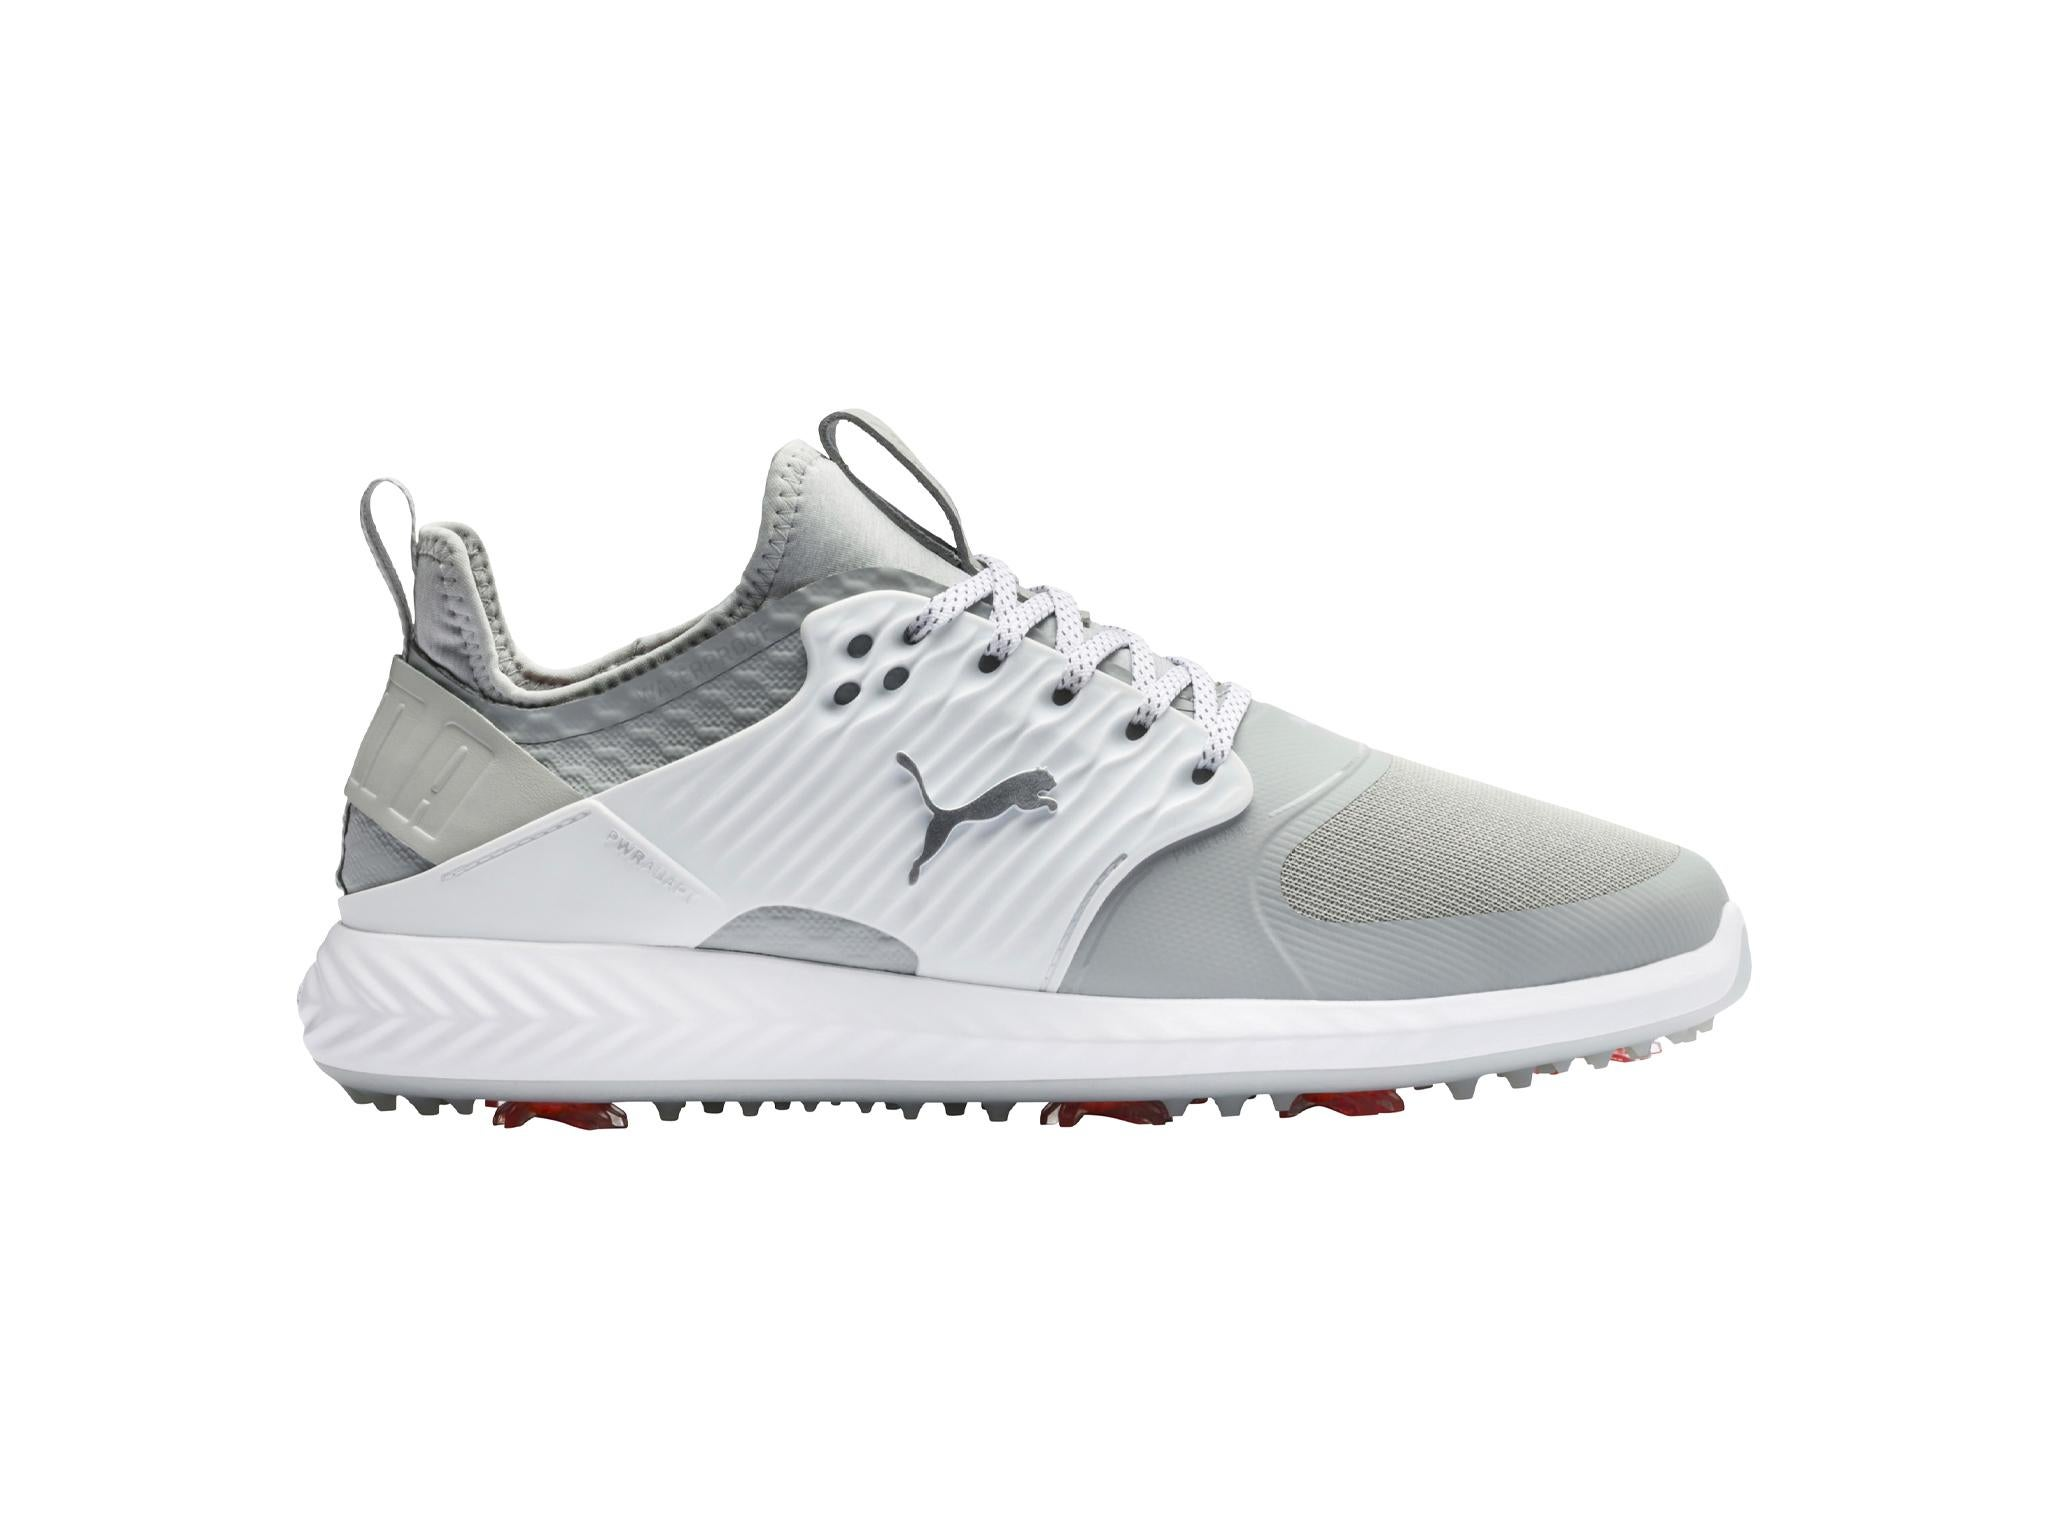 Best men's golf shoes 2020: Spiked